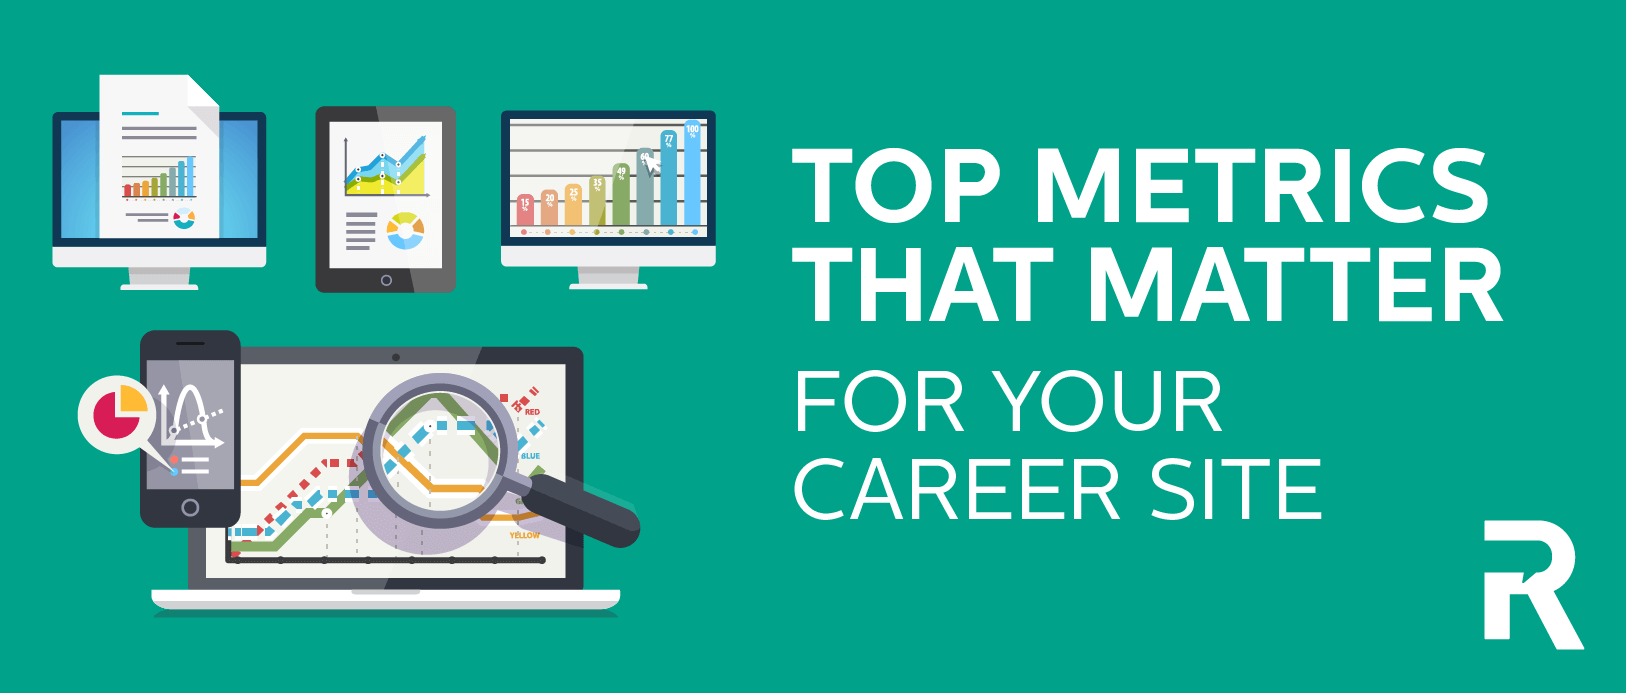 Top Metrics that Matter (For Your Career Site)